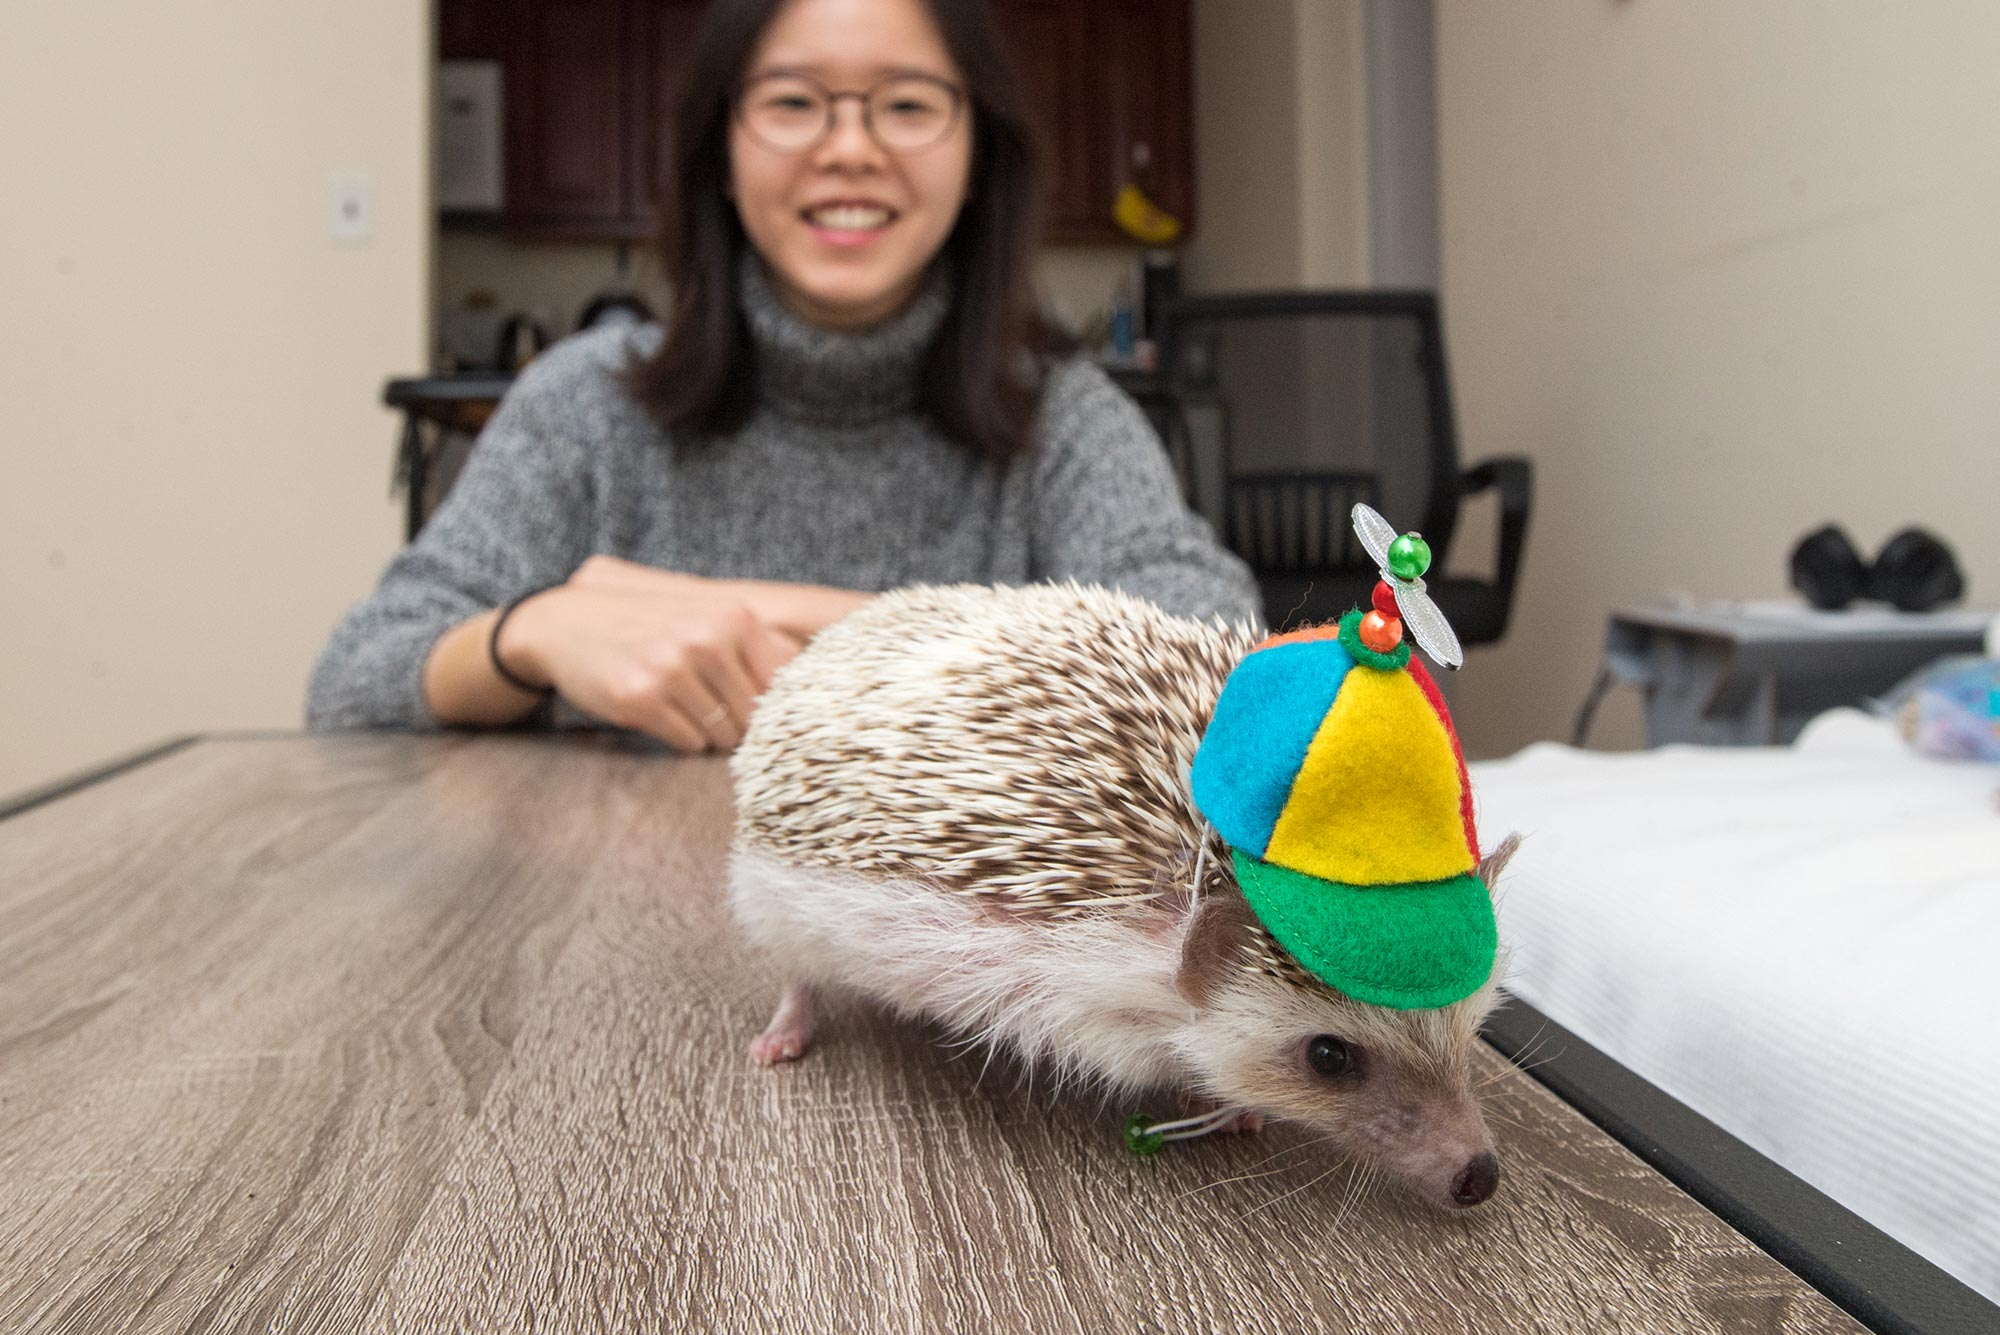 Elise Lim takes a photo with her hedgehog, Alfredo, who is wearing a multicolored propeller hat.